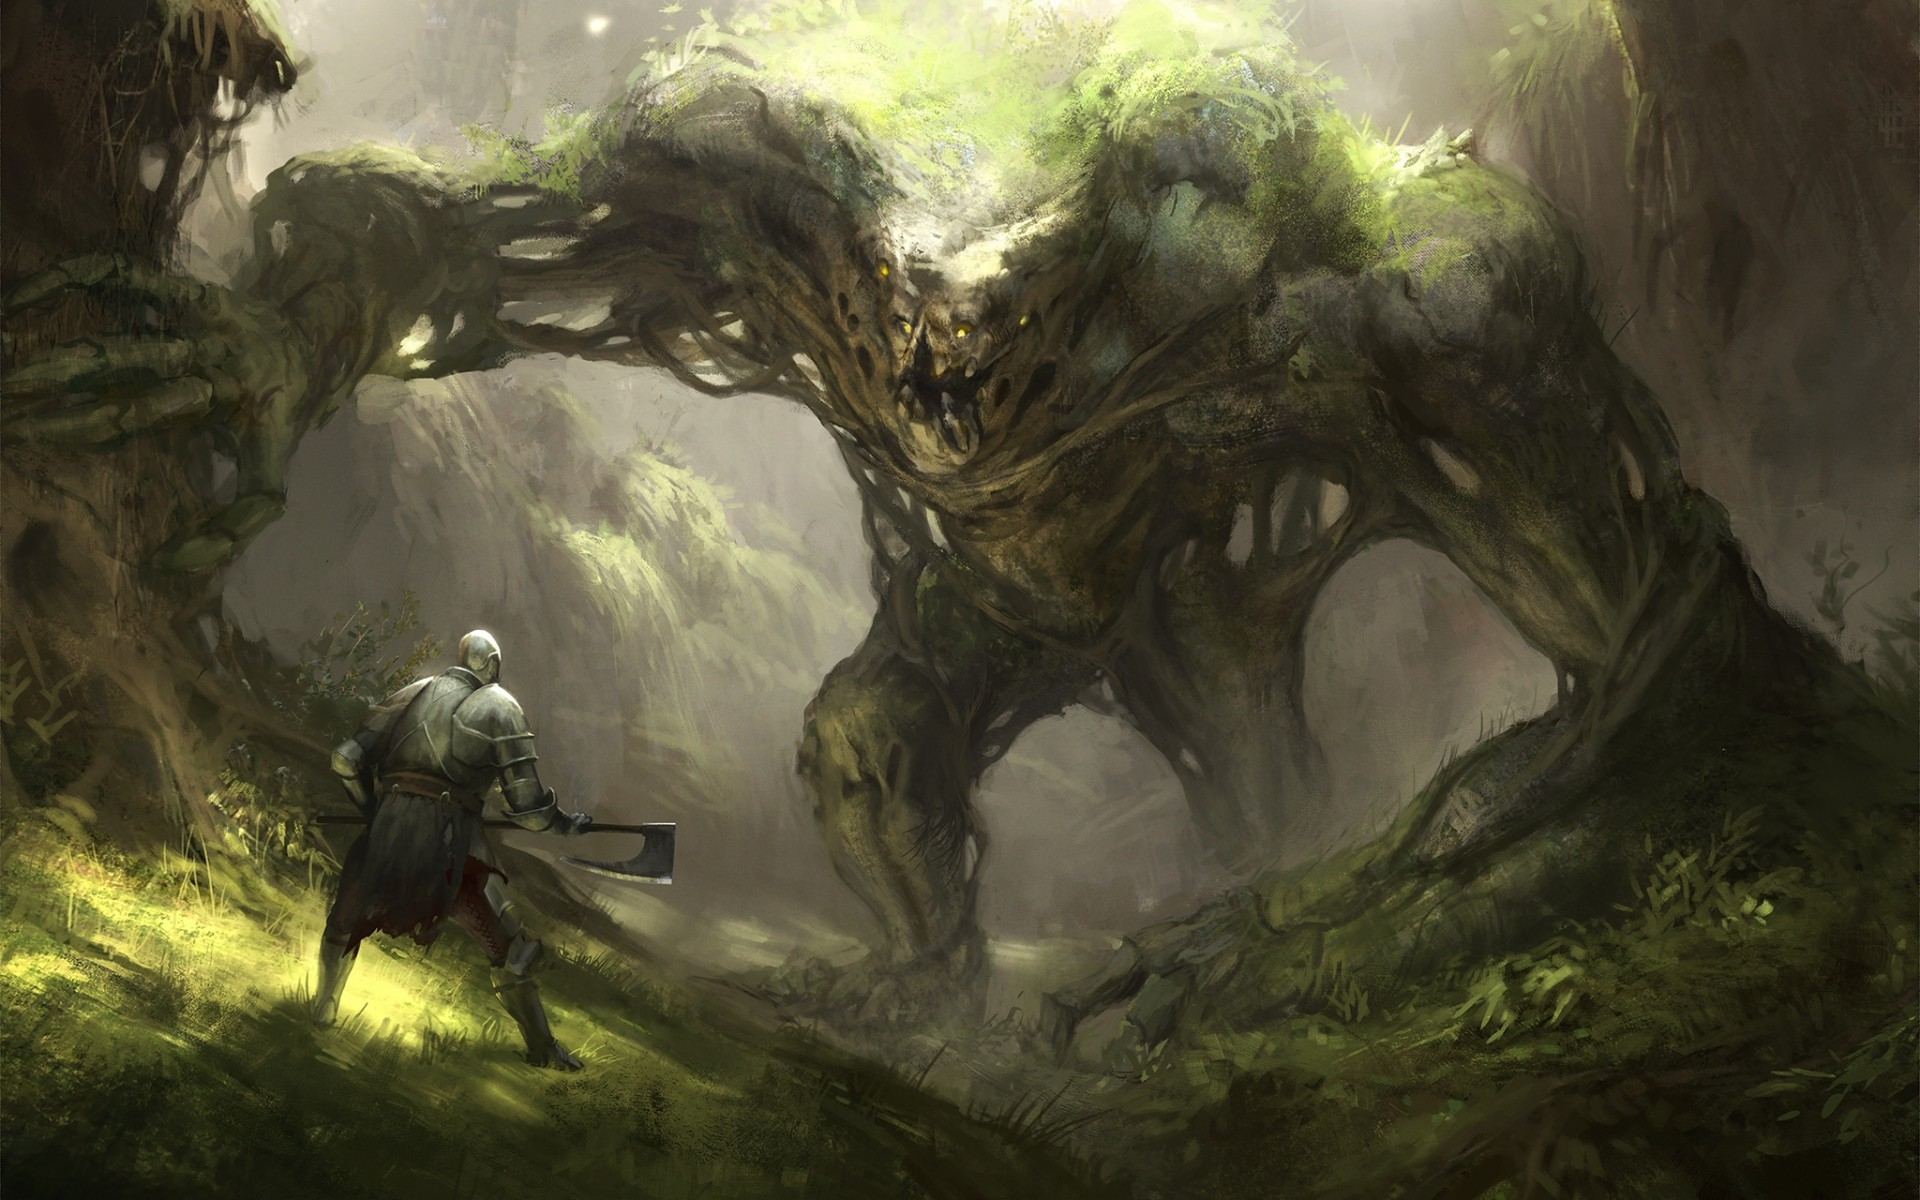 Living Tree, Man, Axe, Forest, Fantasy Creature - Fantasy Earth Elemental Art , HD Wallpaper & Backgrounds